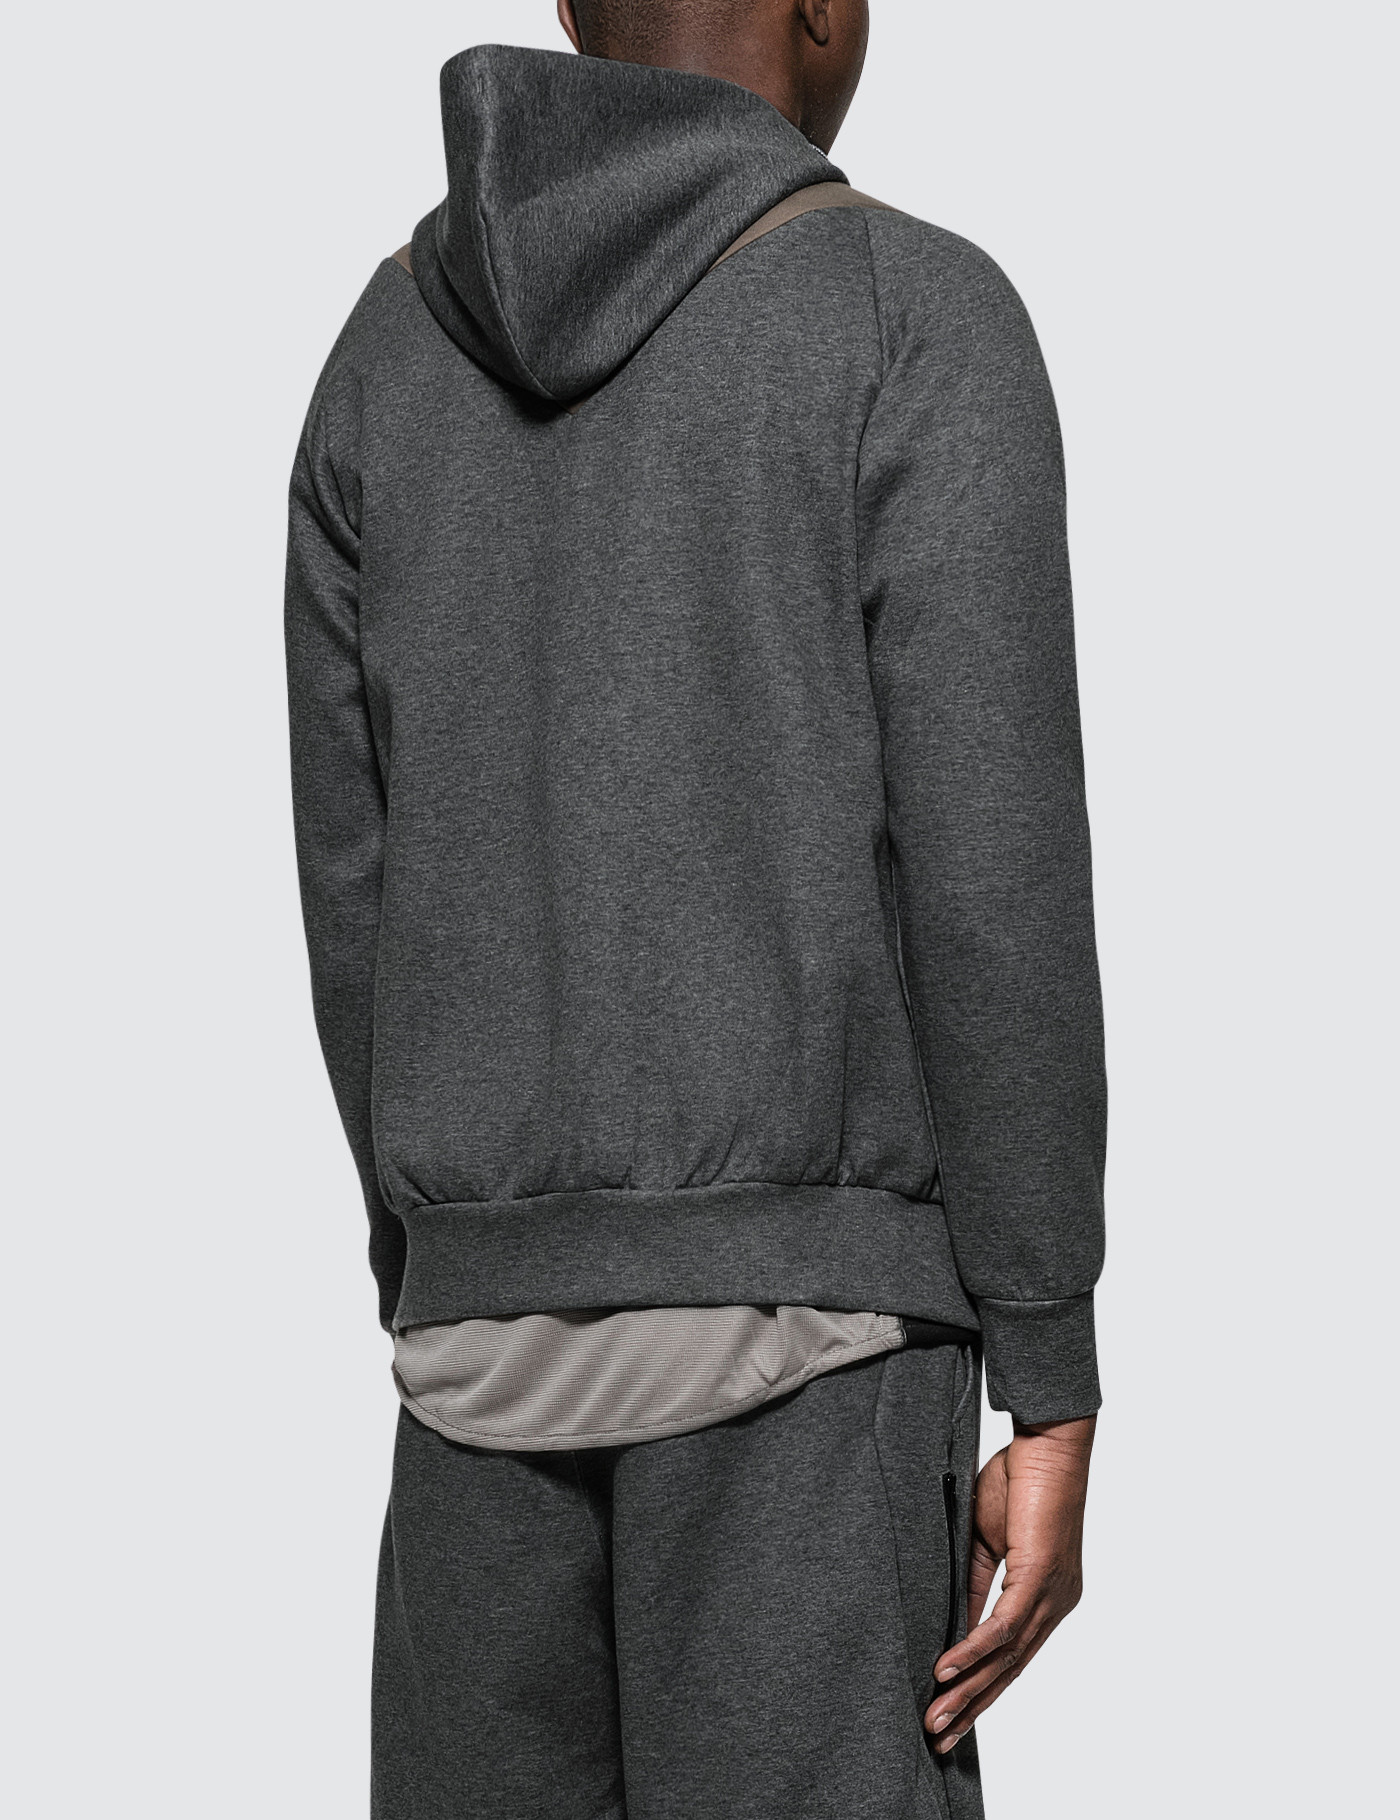 a664f16929e7 ... Every Second Counts x Kazuki Kuraishi Double Knit Hoodie ...